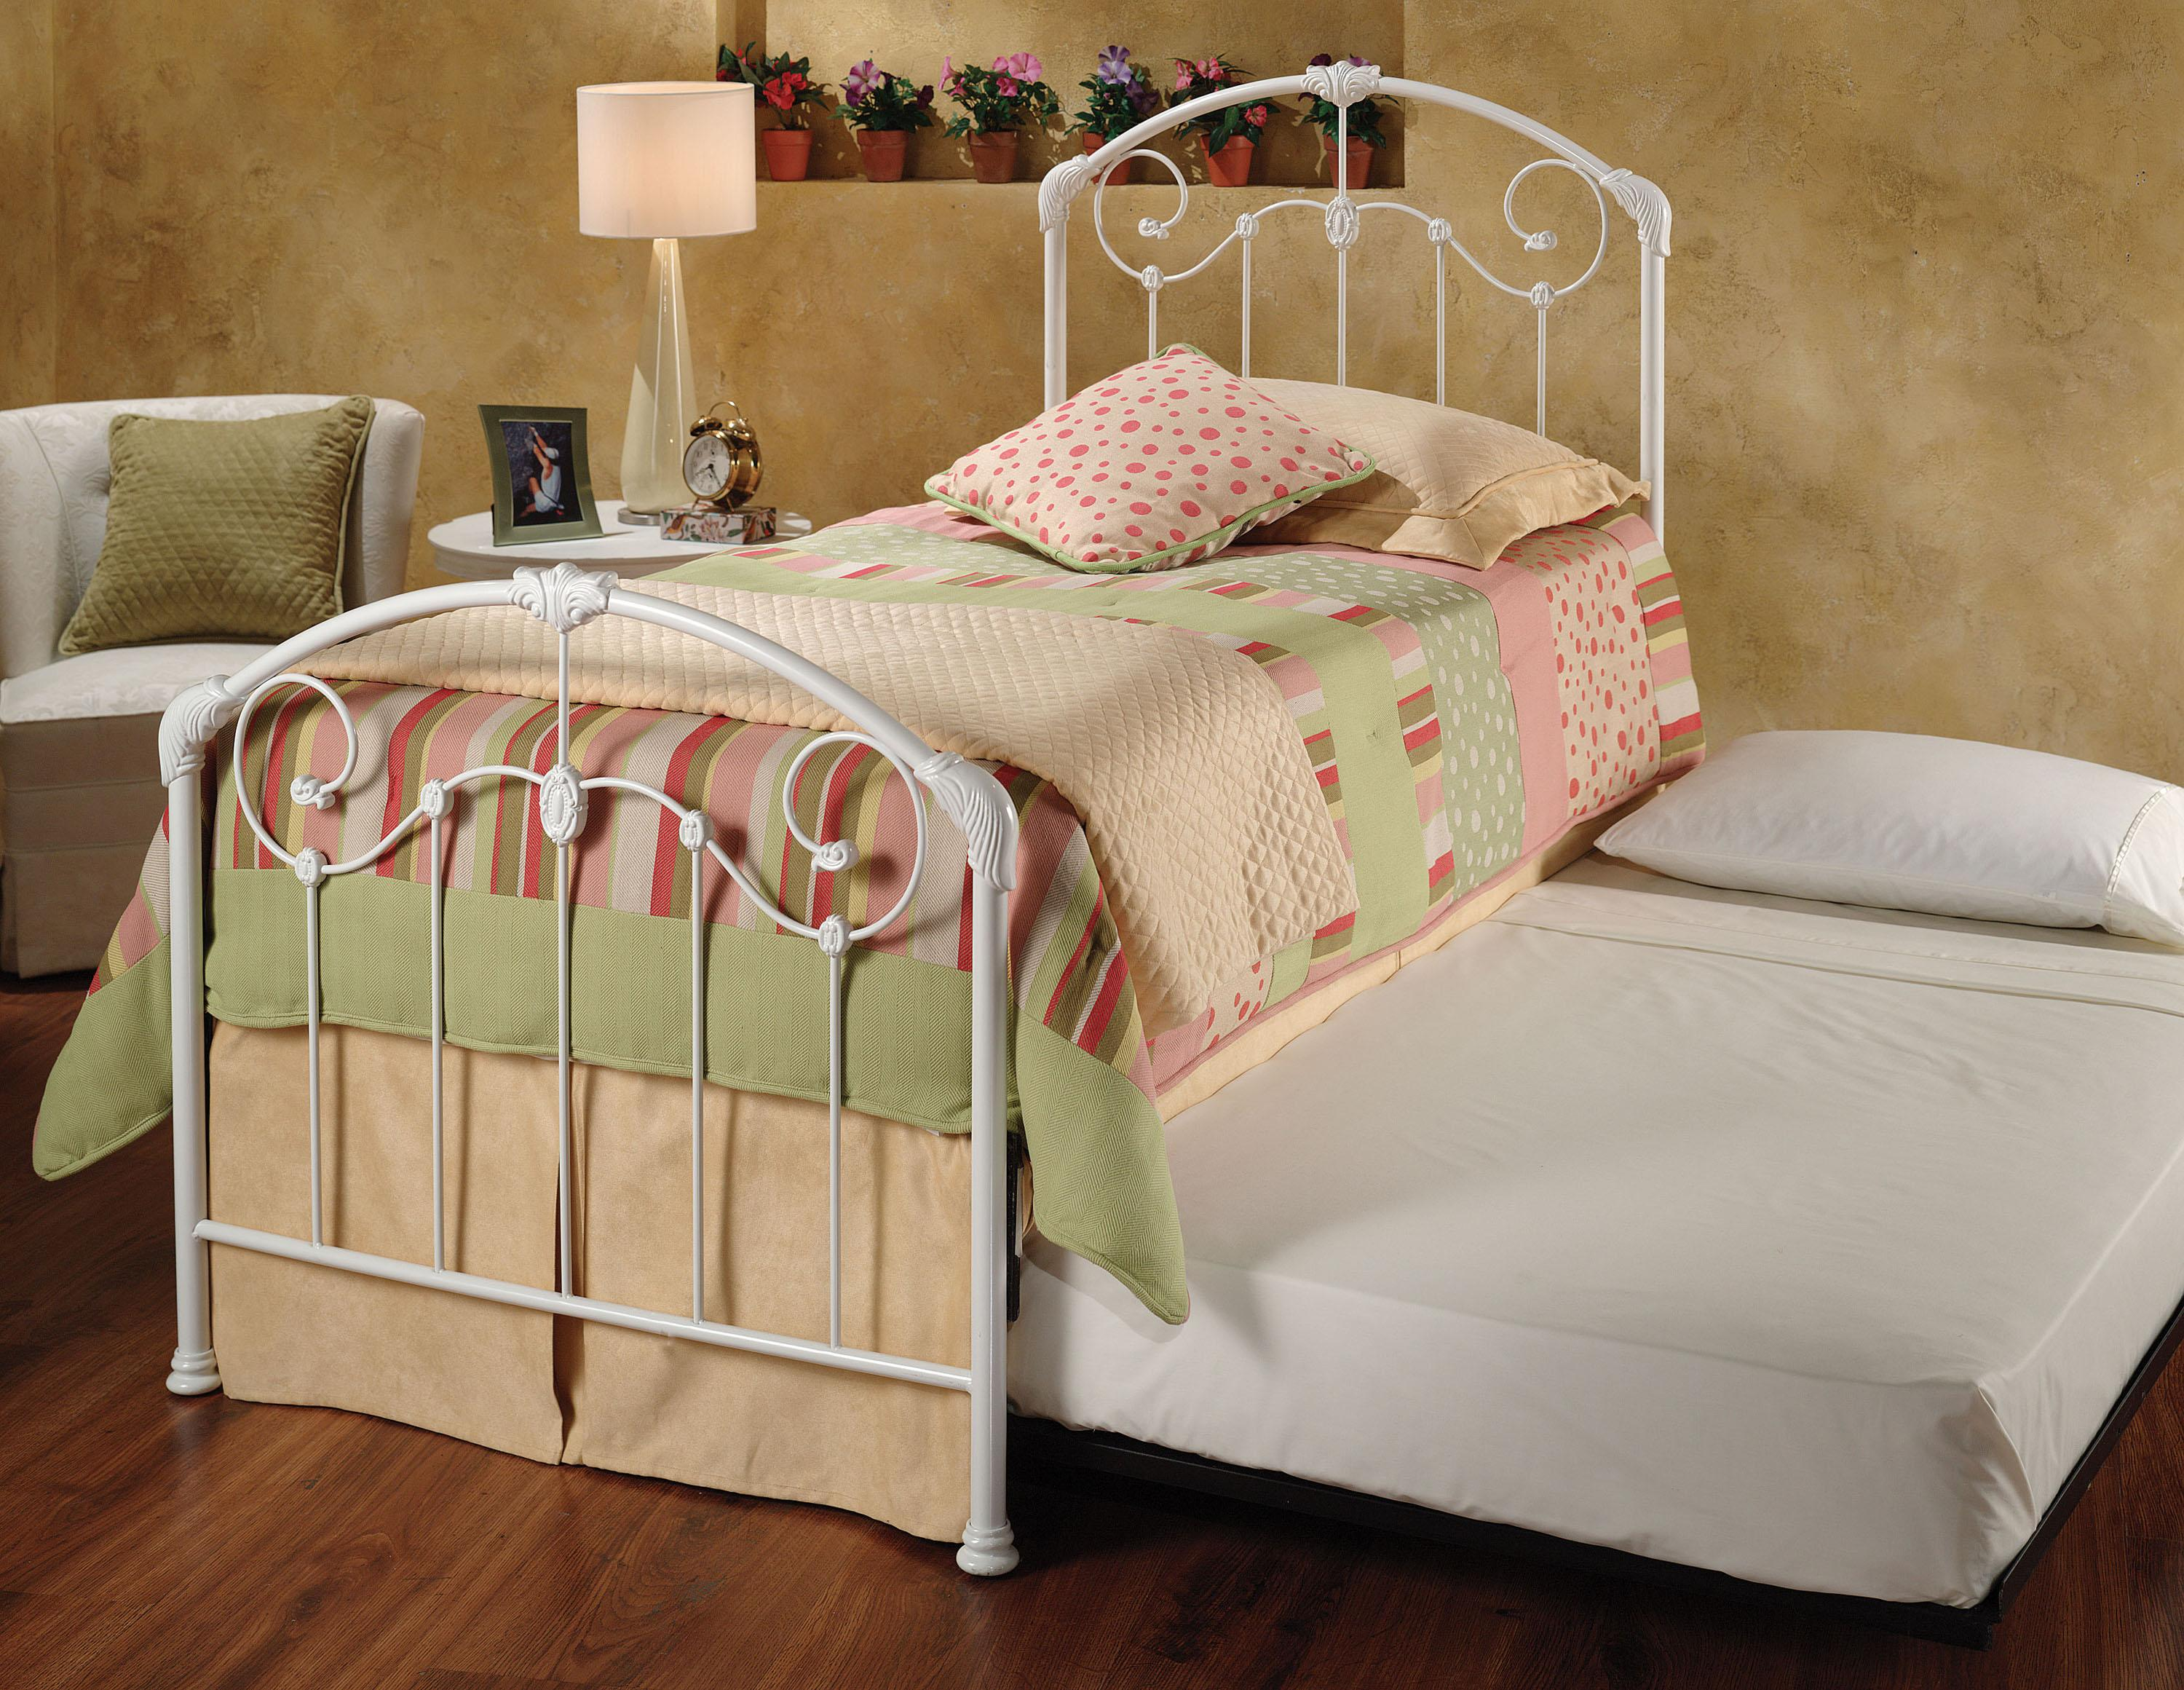 Hillsdale Metal Beds Mia Twin Bed w/ Roll-Out Trundle - Item Number: 325BTWHTR